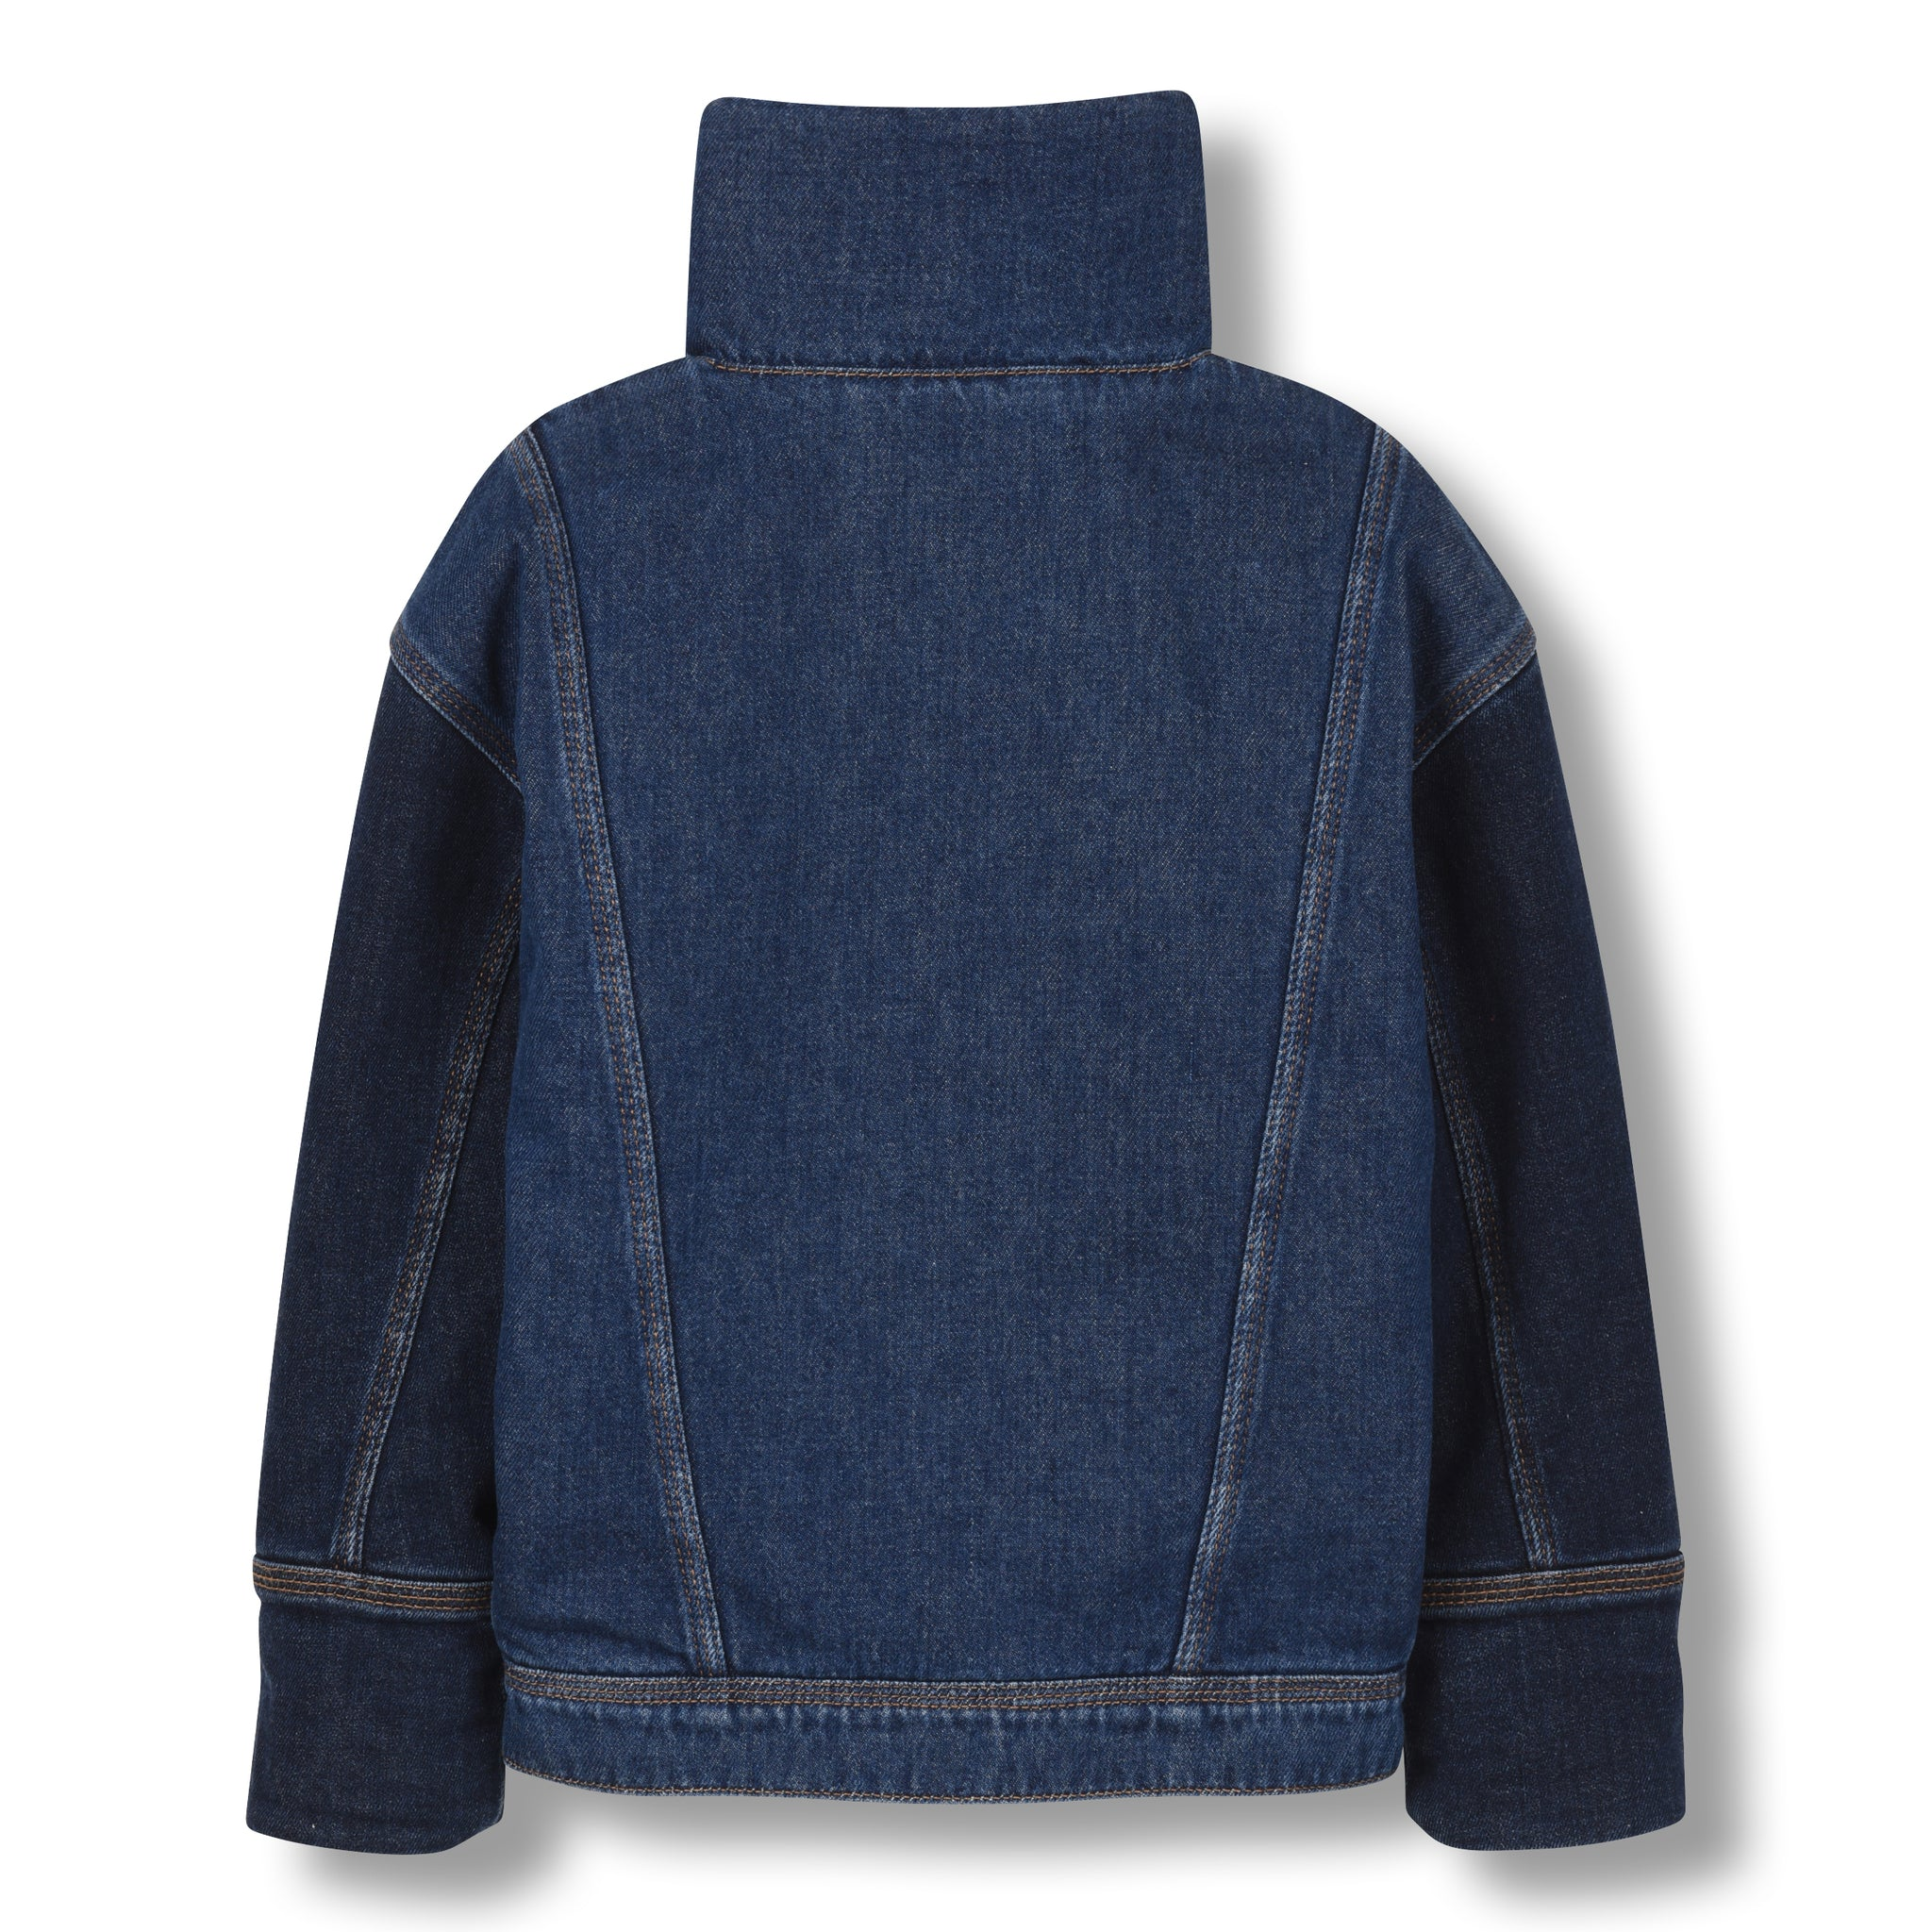 FLYER Blue Denim - Oversized Denim Jacket 2